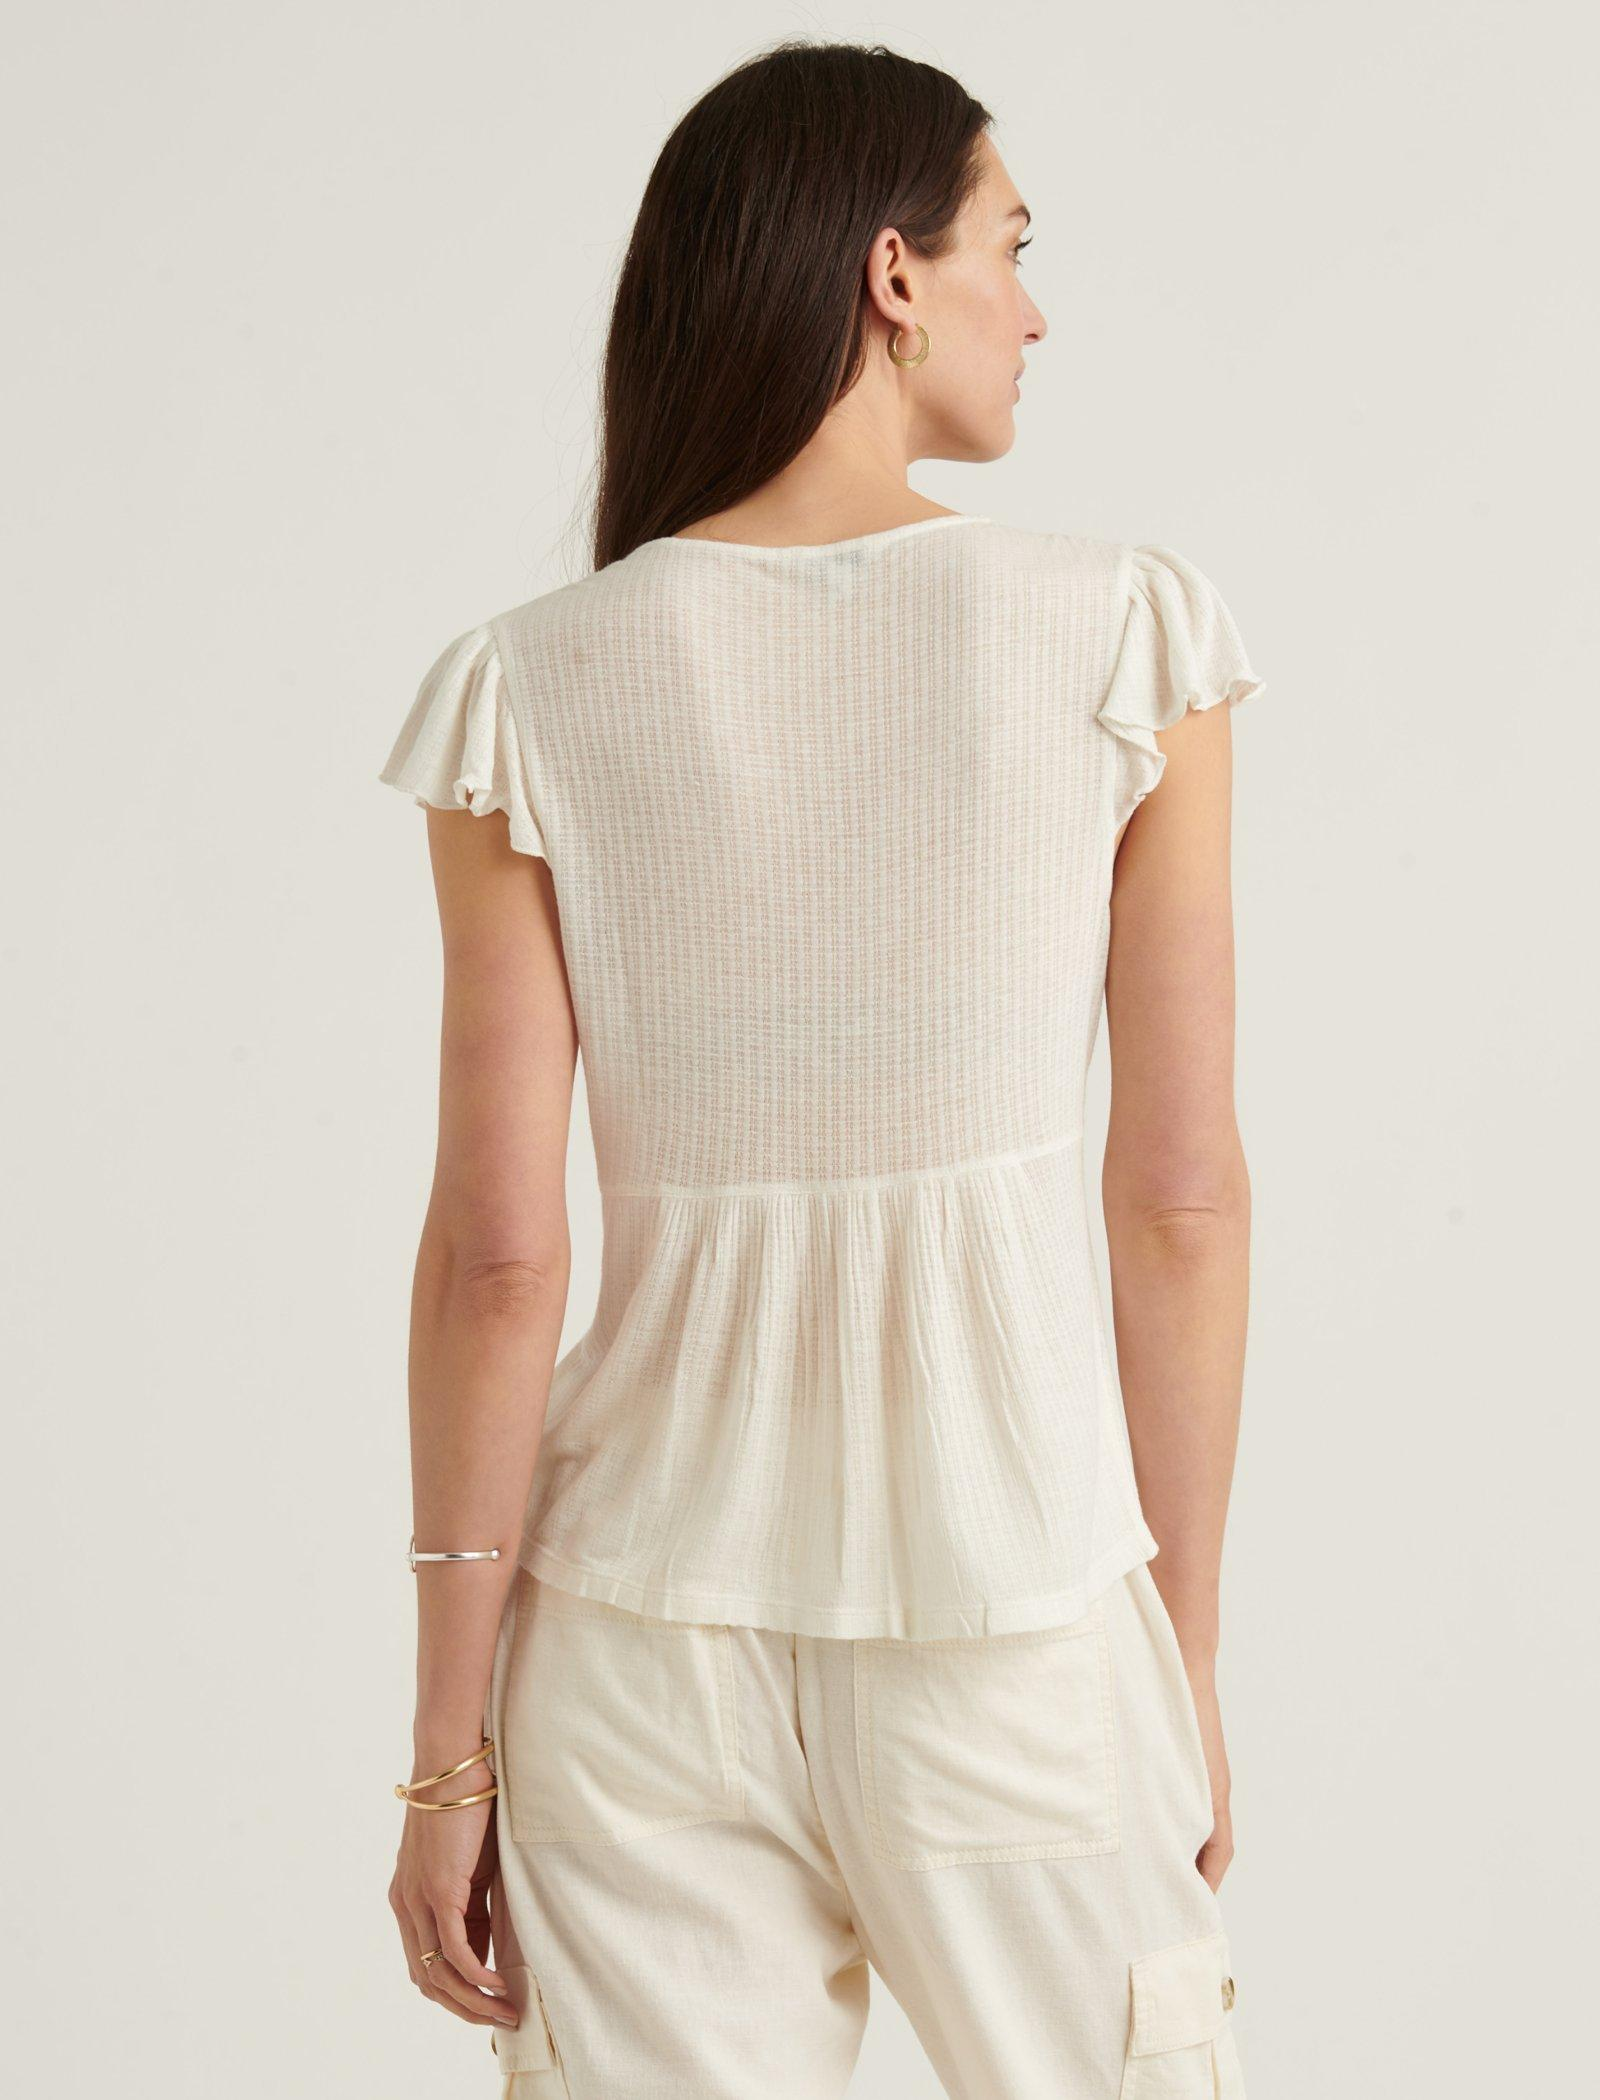 DROP NEEDLE V NECK EMBROIDERED TOP, image 3